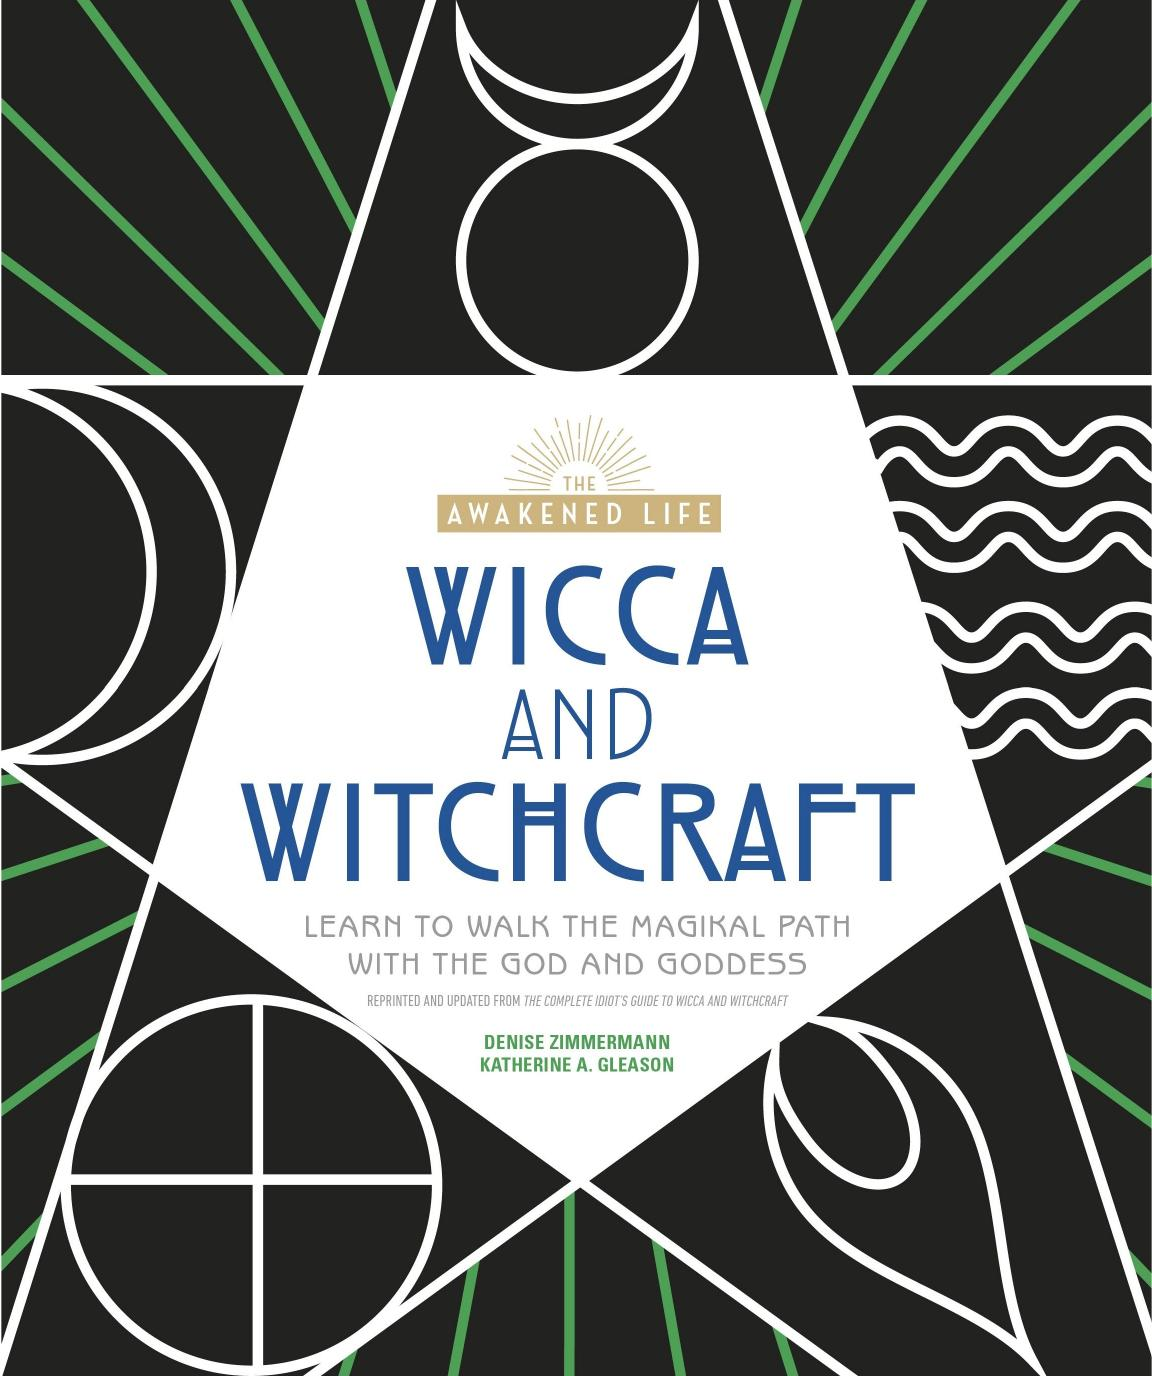 Wicca and Witchcraft: Learn to Walk the Magikal Path with the God and Goddess (The Awakened Life)